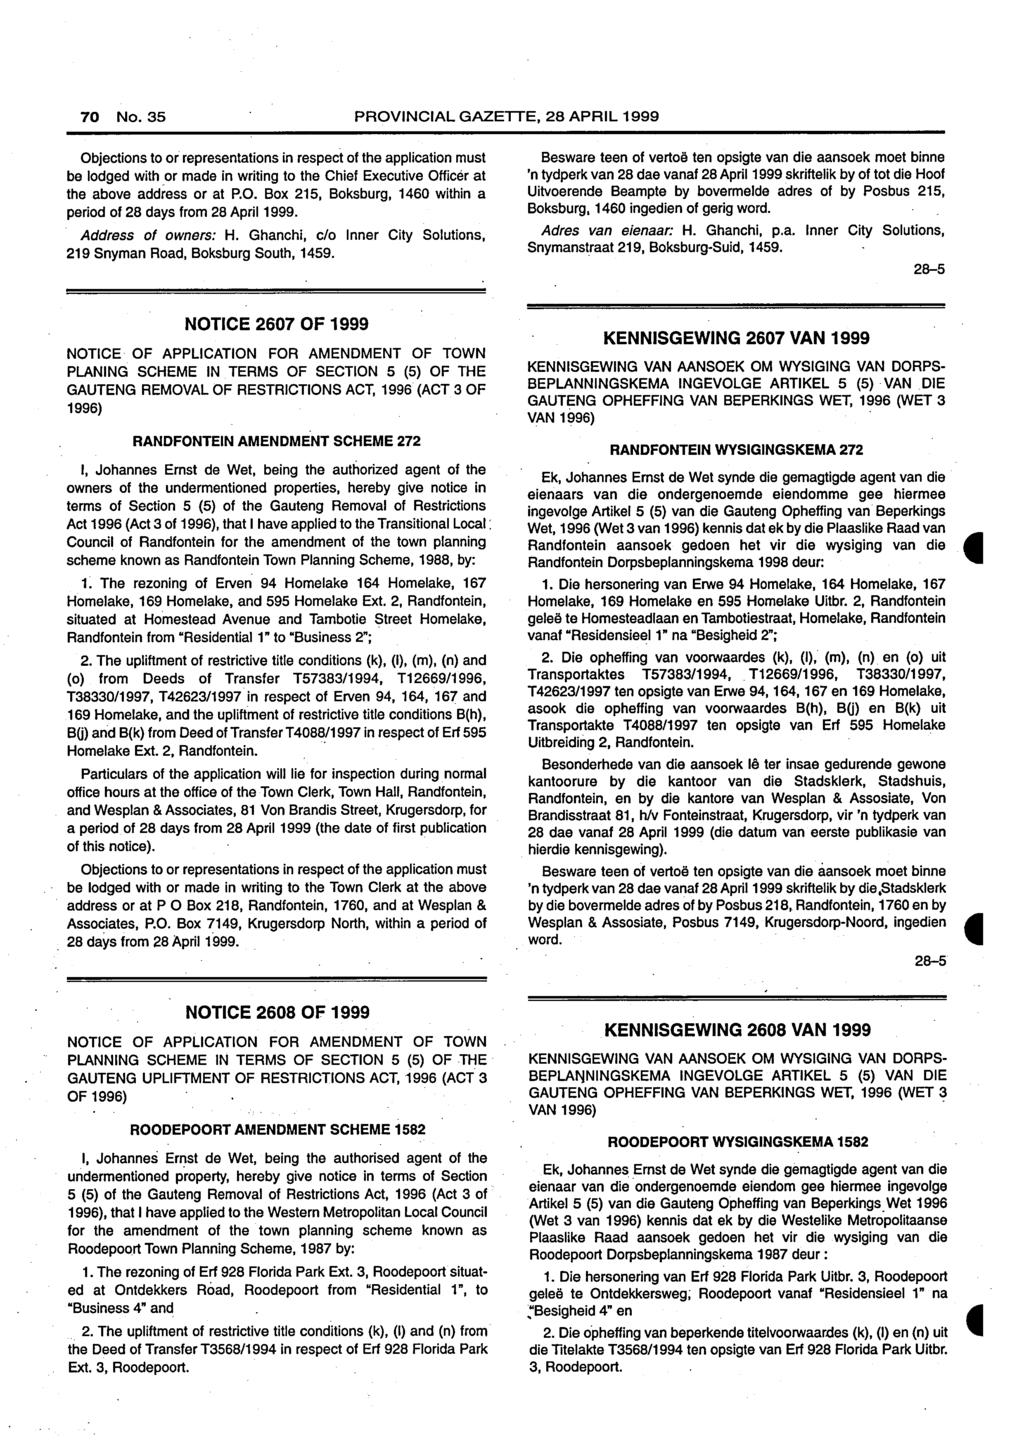 70 No. 35 PROVINCIAL GAZETTE, 28 APRIL 1999 be lodged with or made in writing to the Chief Executive Officer at the above address or at P.O. Box 215, Boksburg, 1460 within a period of 28 days from 28 April 1999.